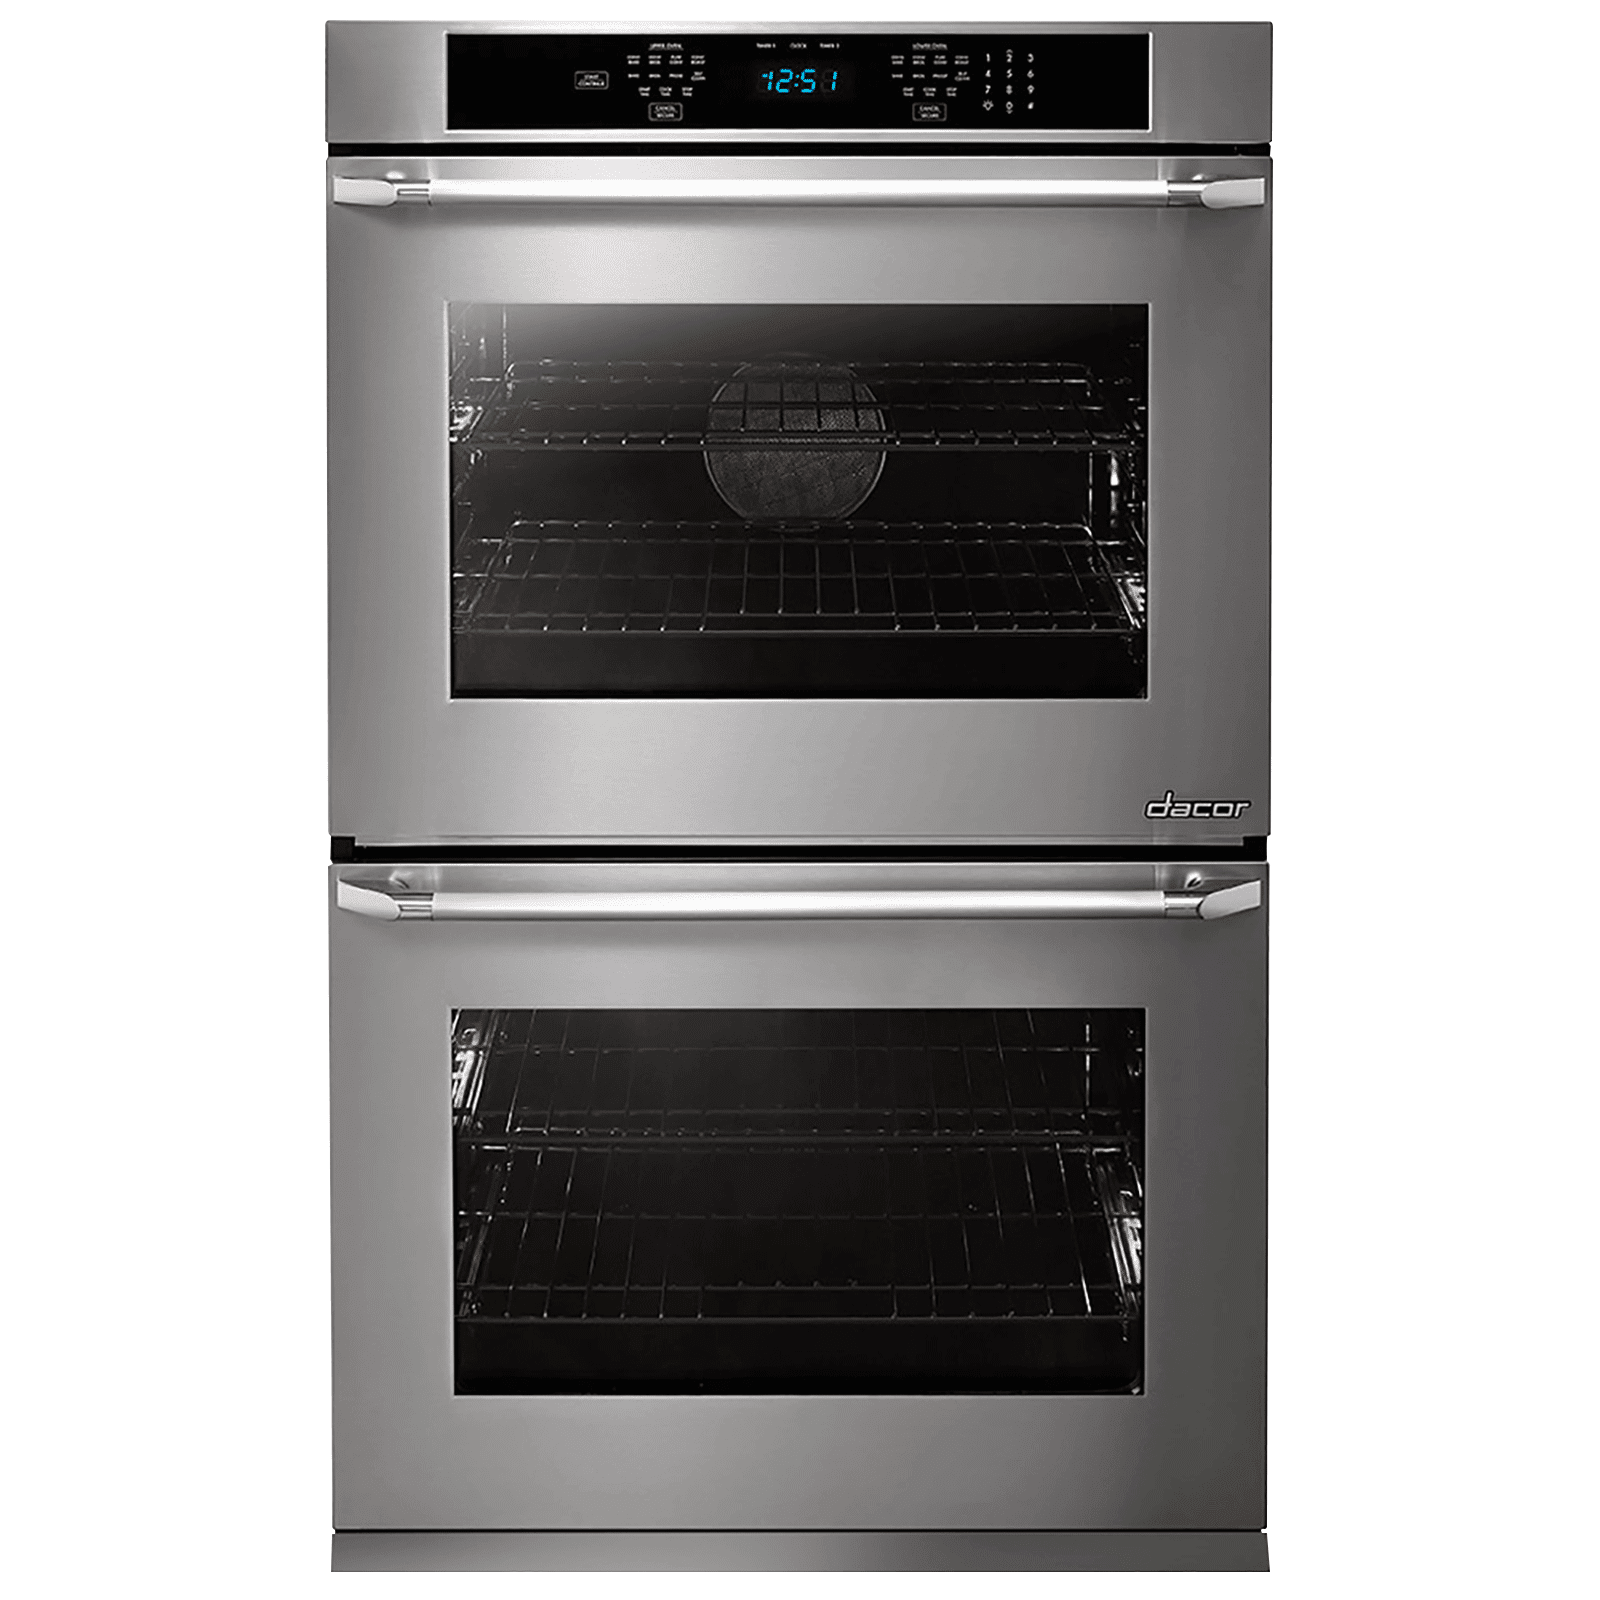 Appliance Repair San Antonio